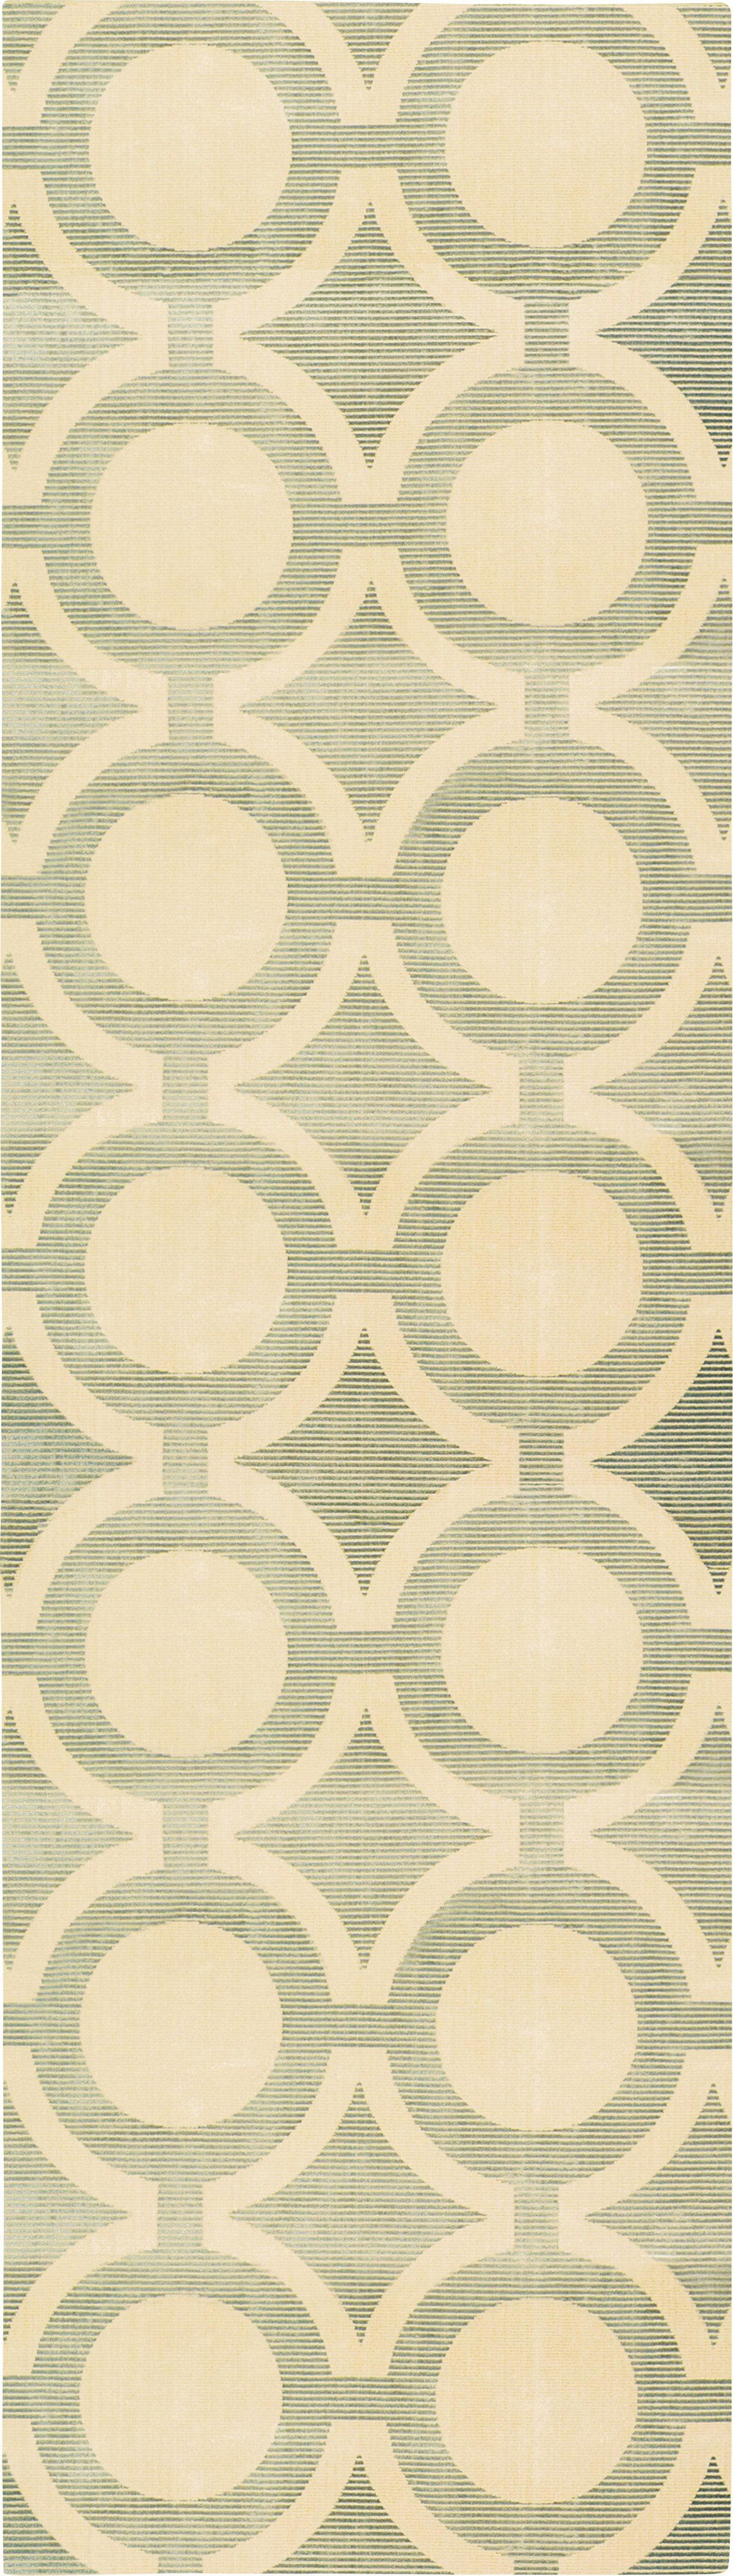 "Luminance Cream Grey Rug - 5 Size Options Rugs Nourison 2'3"" x 8' Runner"